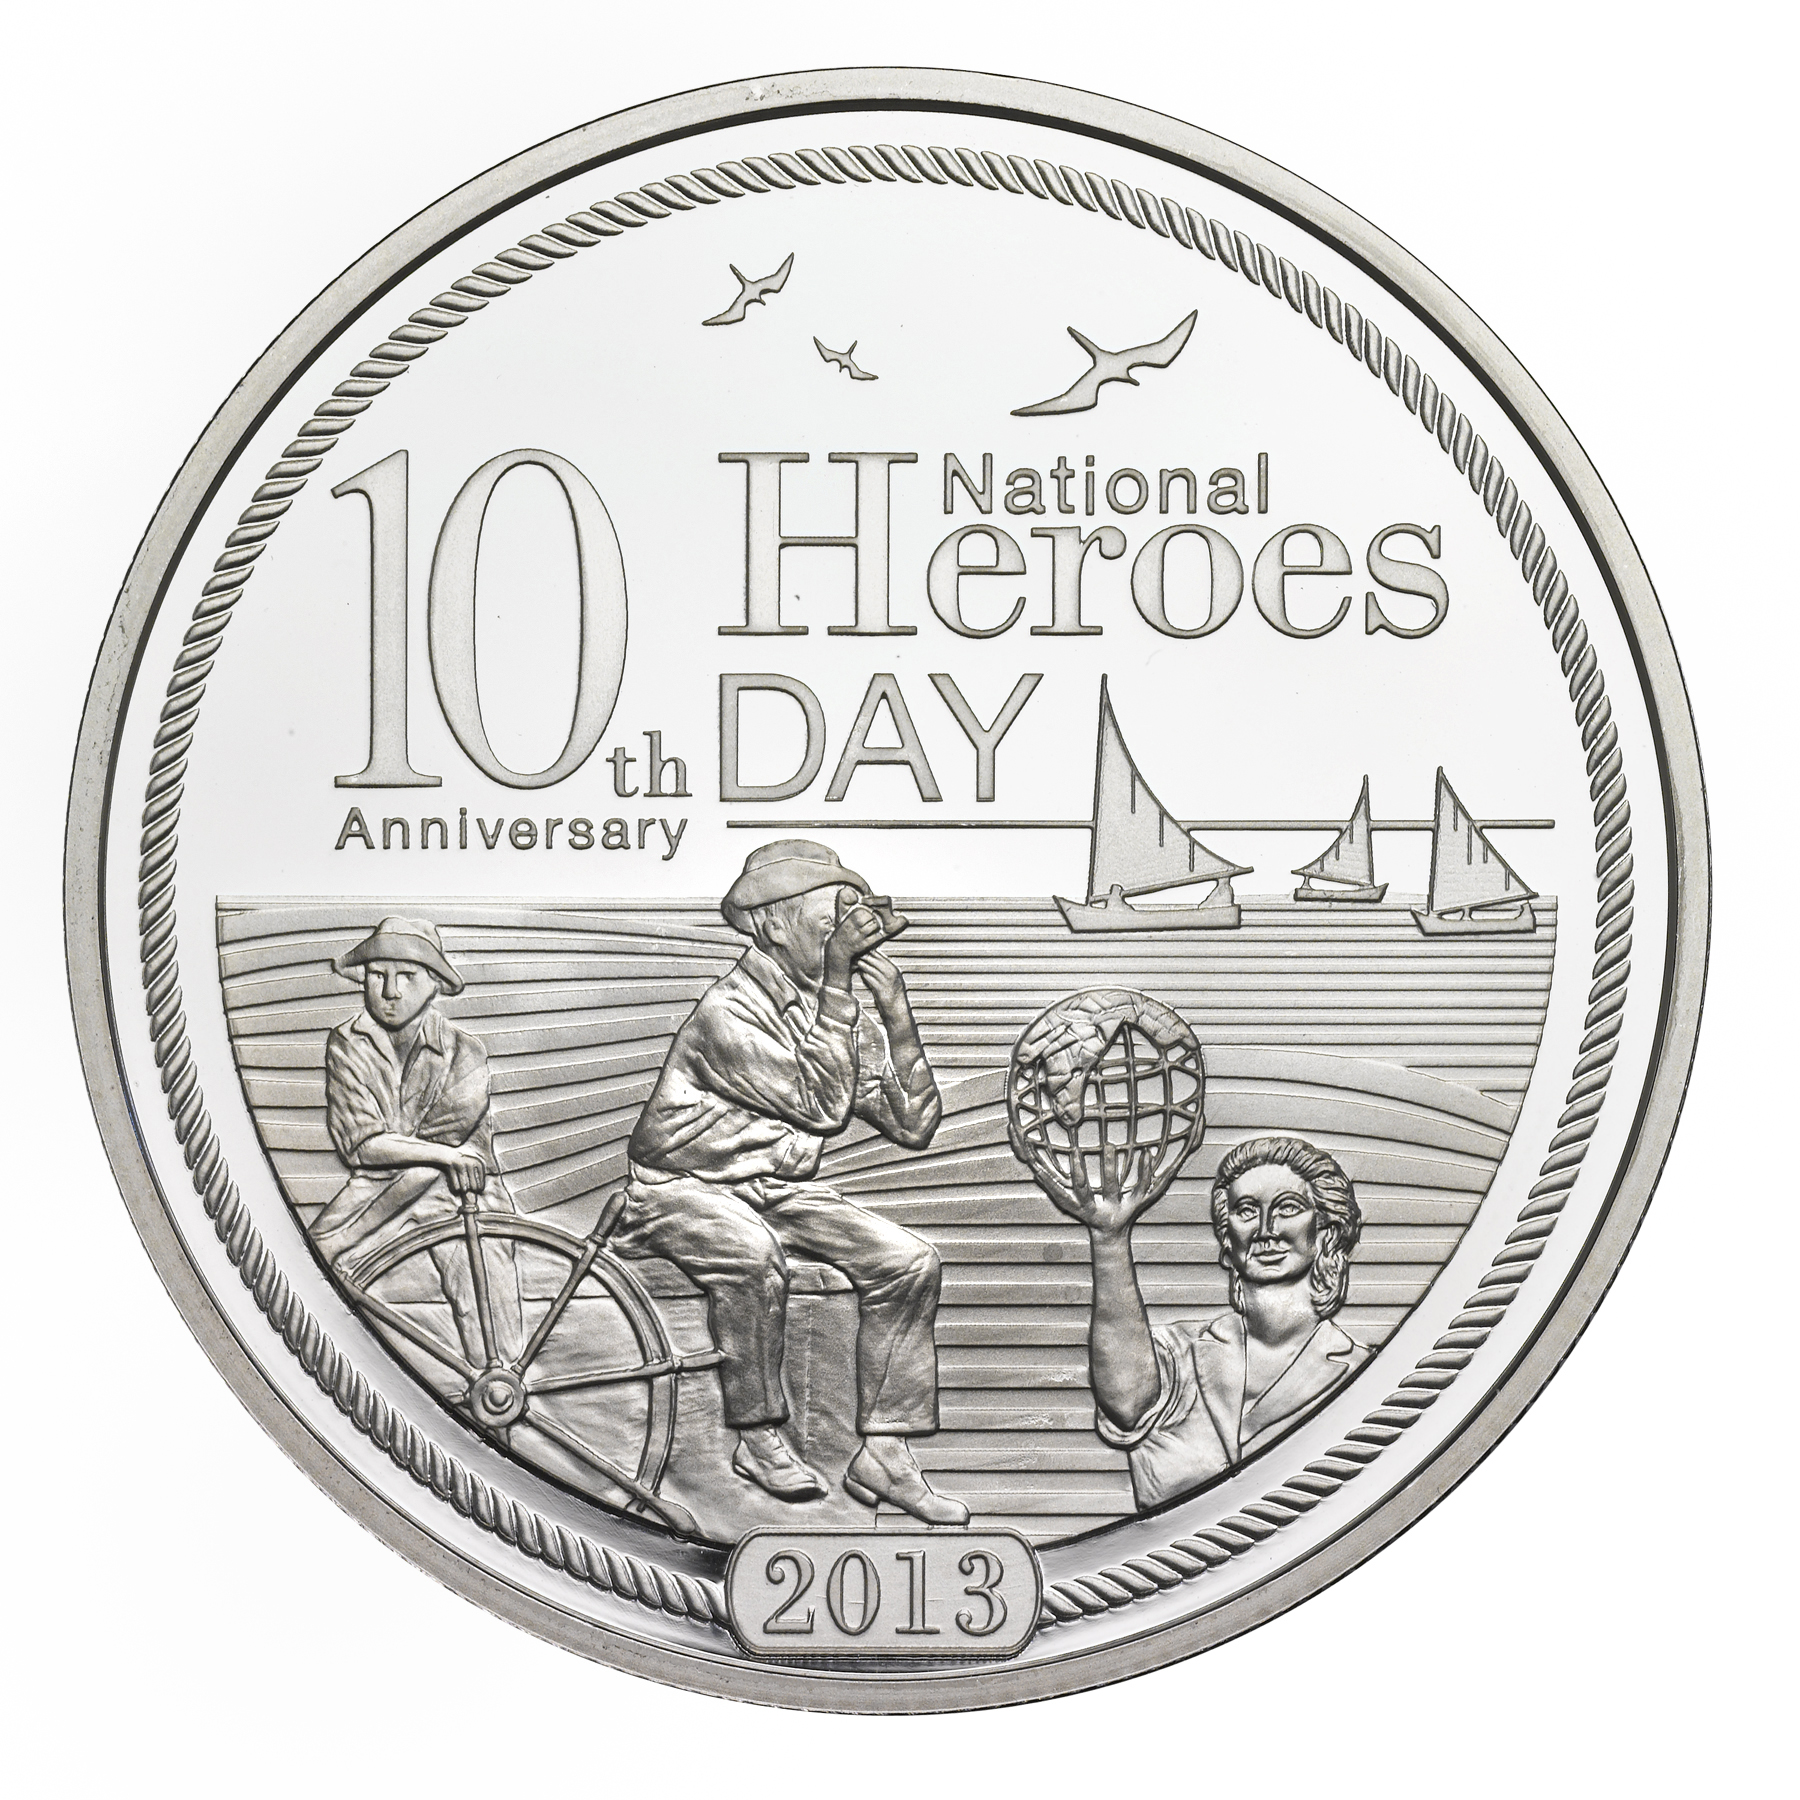 National Heroes Day 10th Anniversary (Silver)